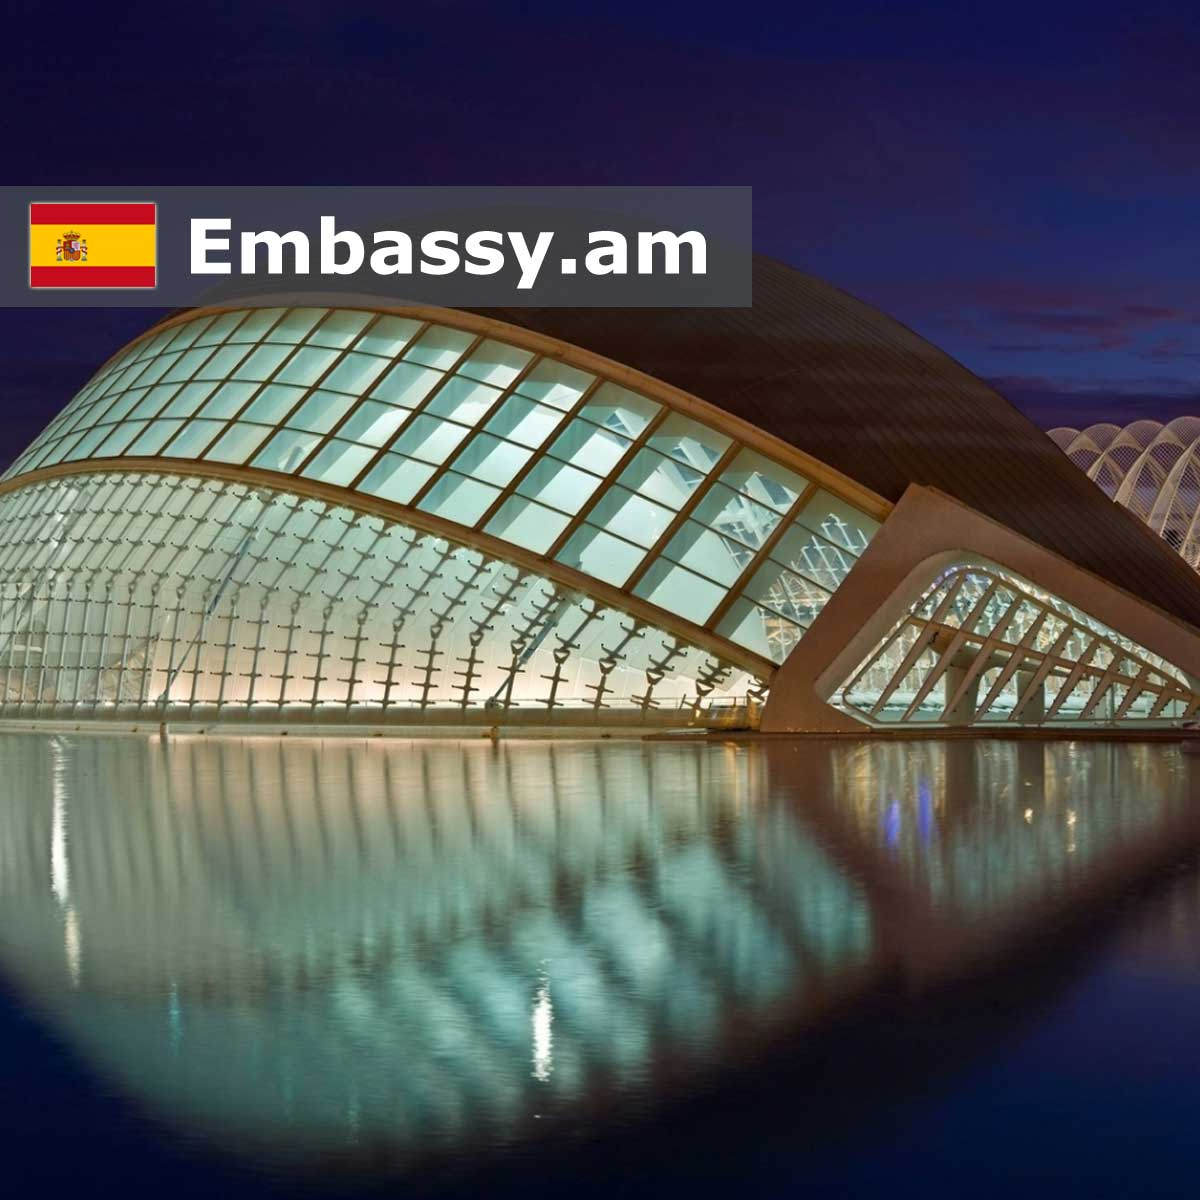 Valencia - Hotels in Spain - Embassy.am